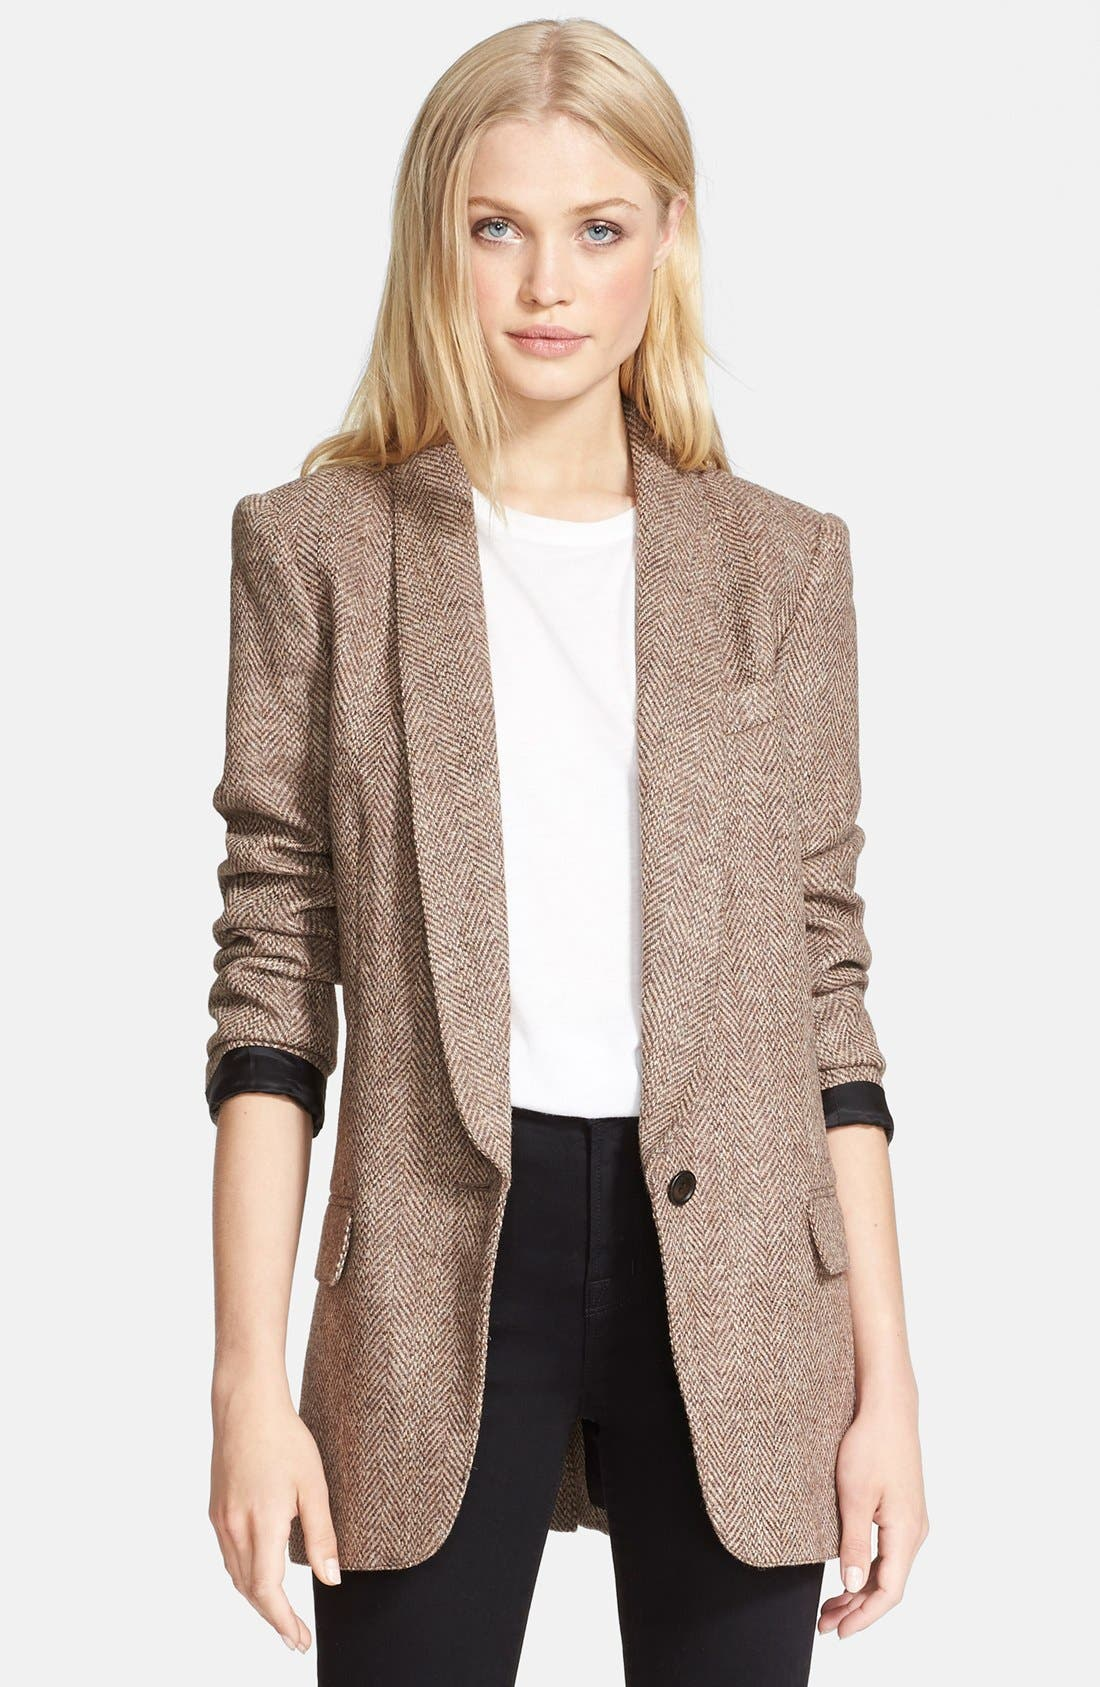 SMYTHE, Herringbone Boyfriend Blazer, Main thumbnail 1, color, 251